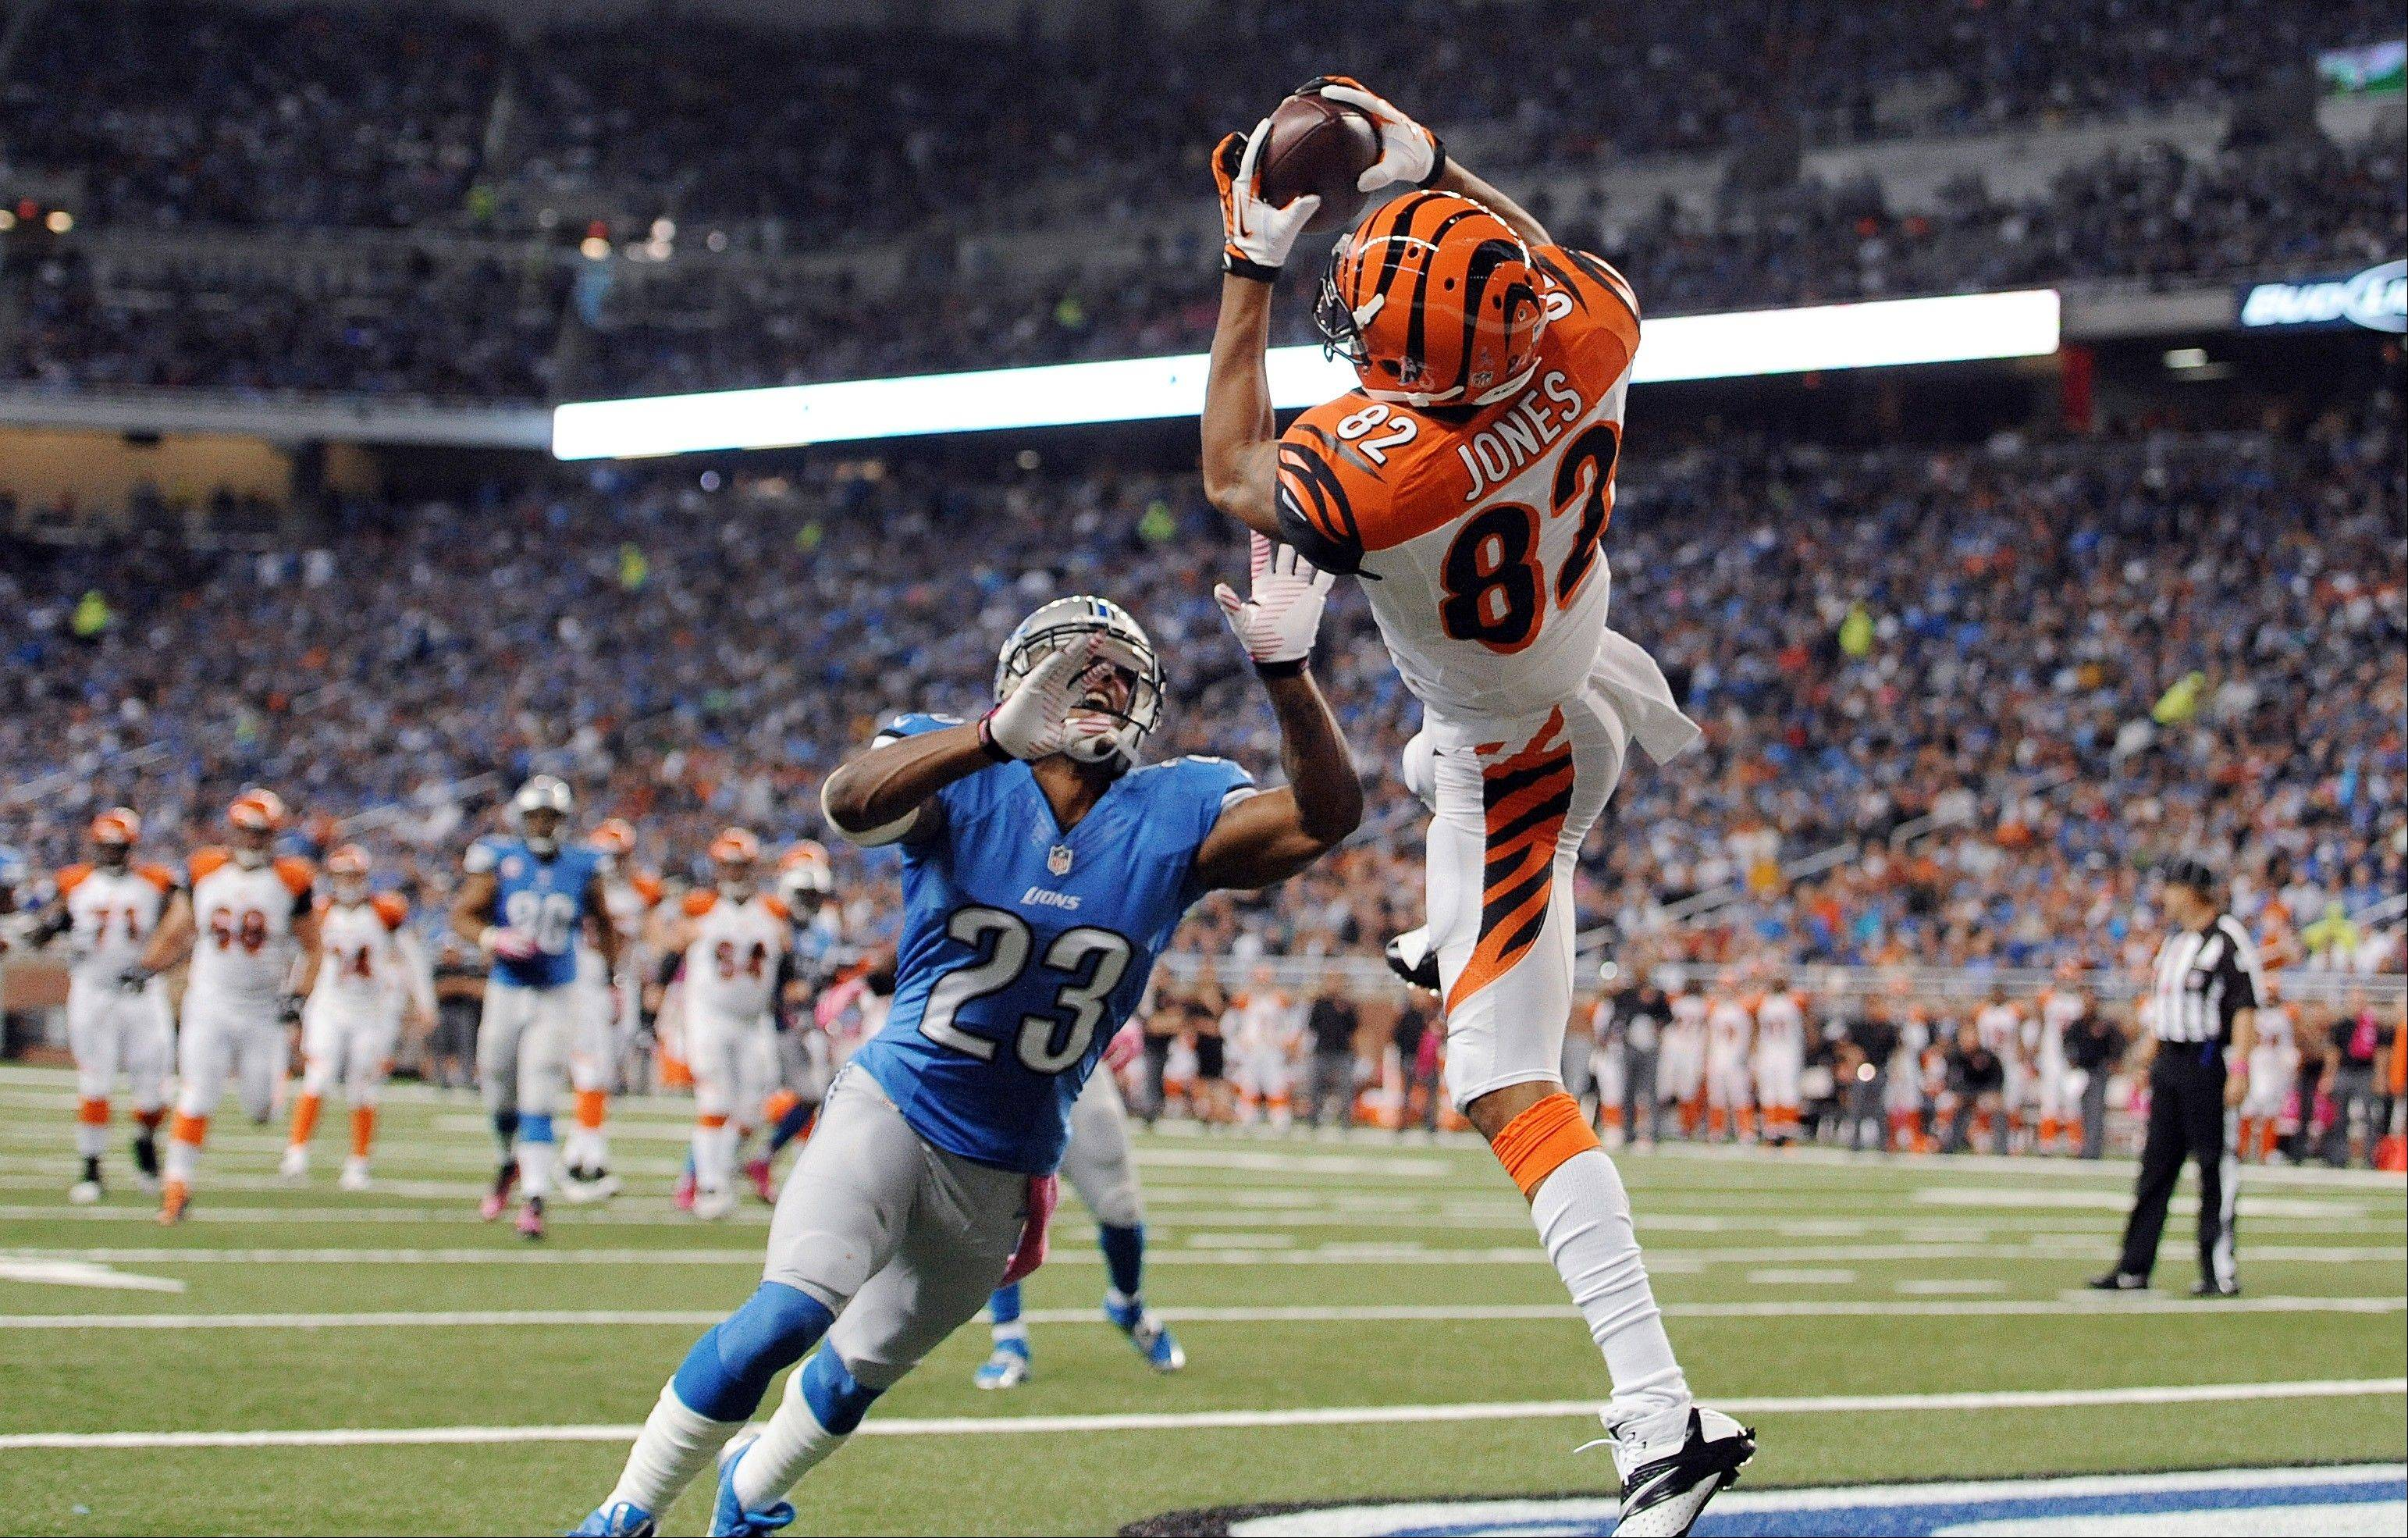 Cincinnati Bengals� Marvin Jones (82) catches a 12-yard touchdown reception as Detroit Lions� Chris Houston (23) defends in the second quarter of an NFL football game on Sunday, Oct. 20, 2013, in Detroit.